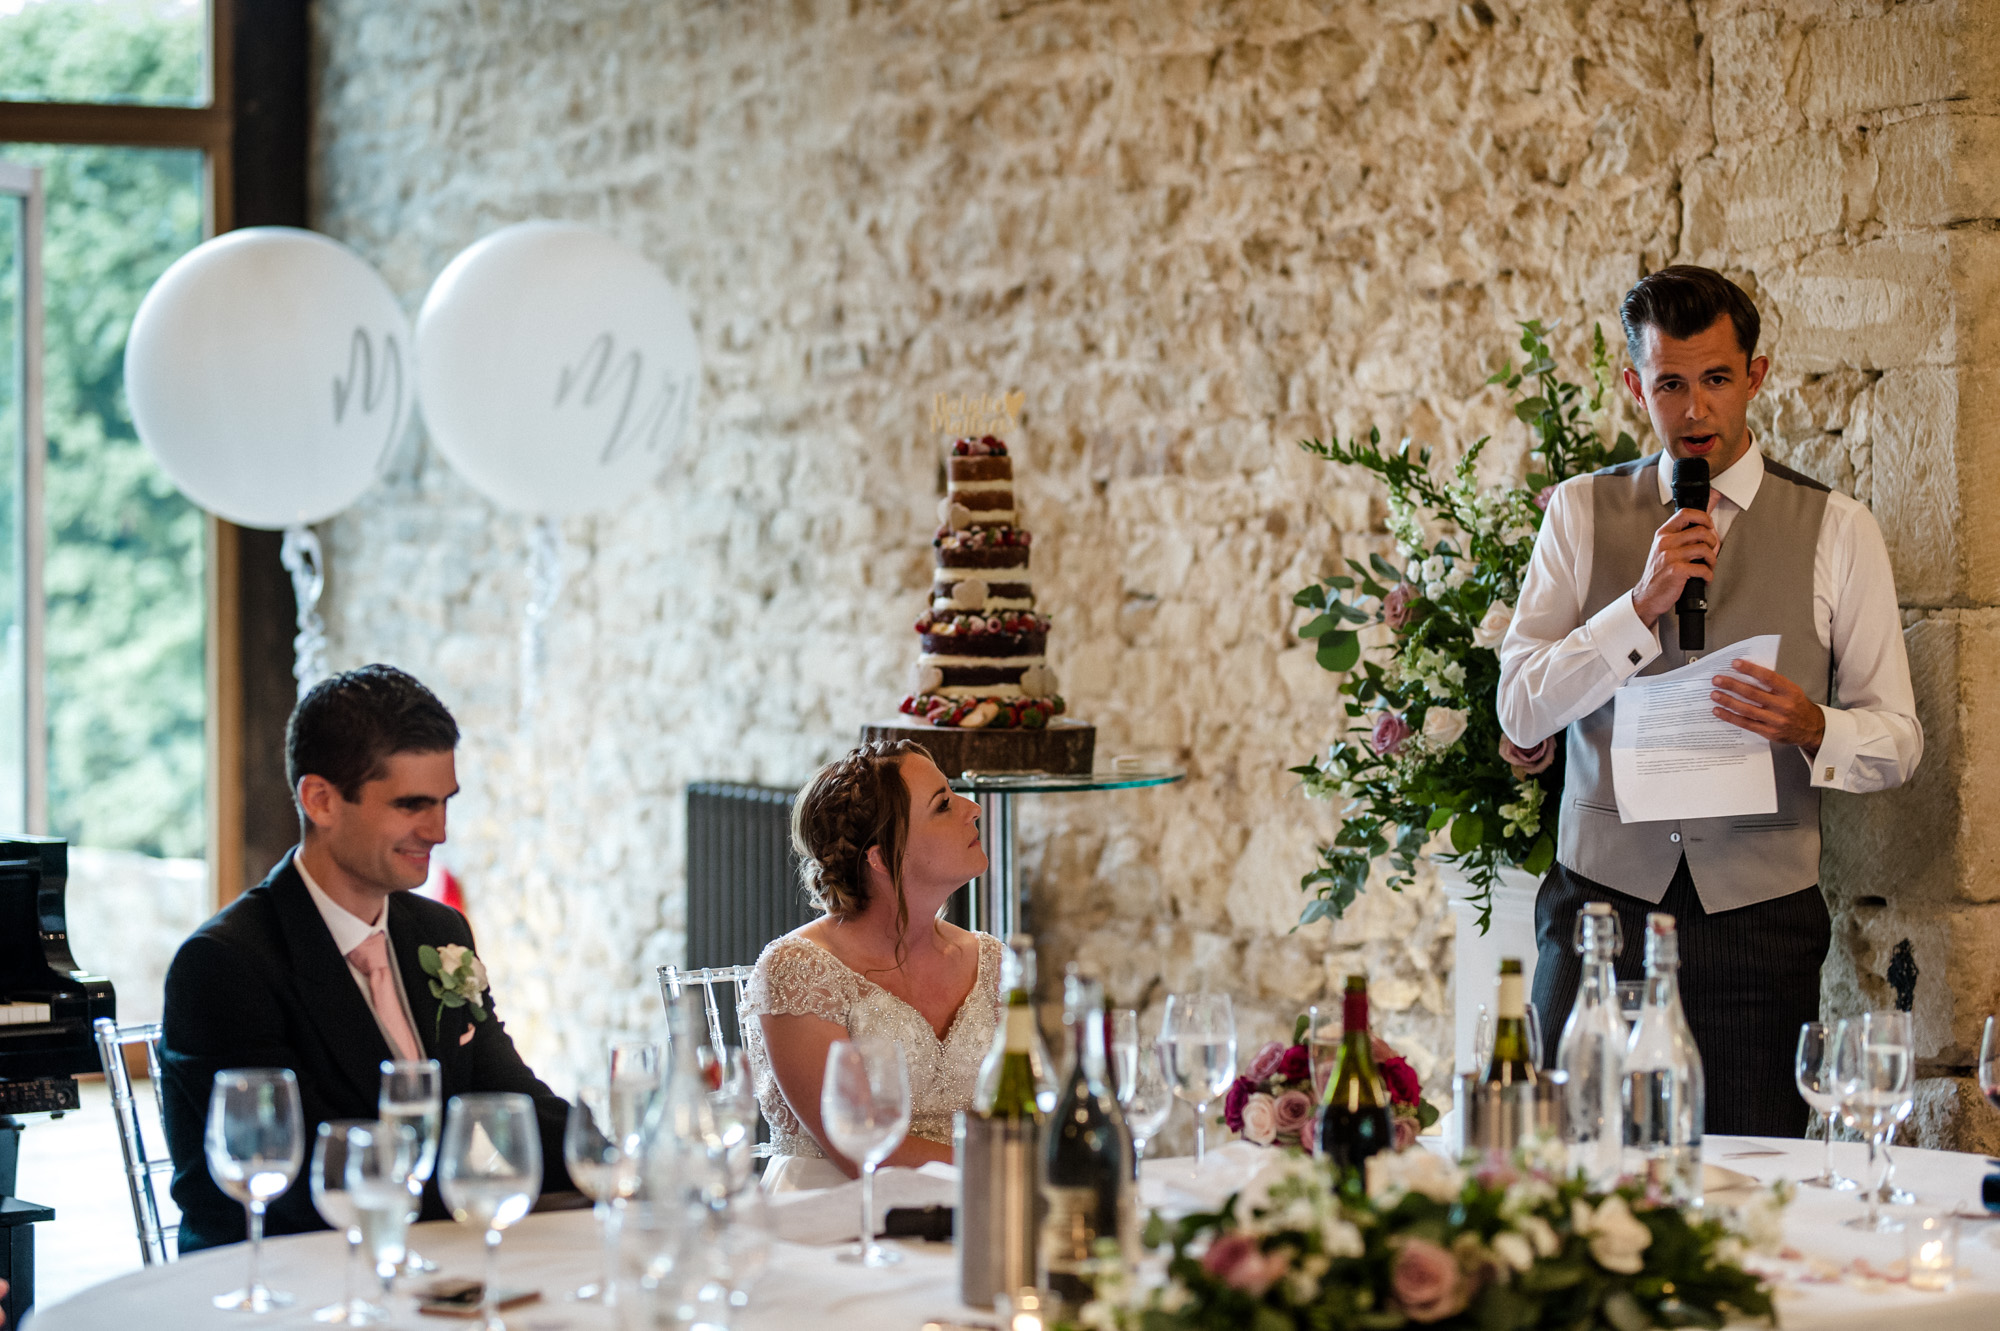 Notley Barn Wedding 26.10.18 22.jpg